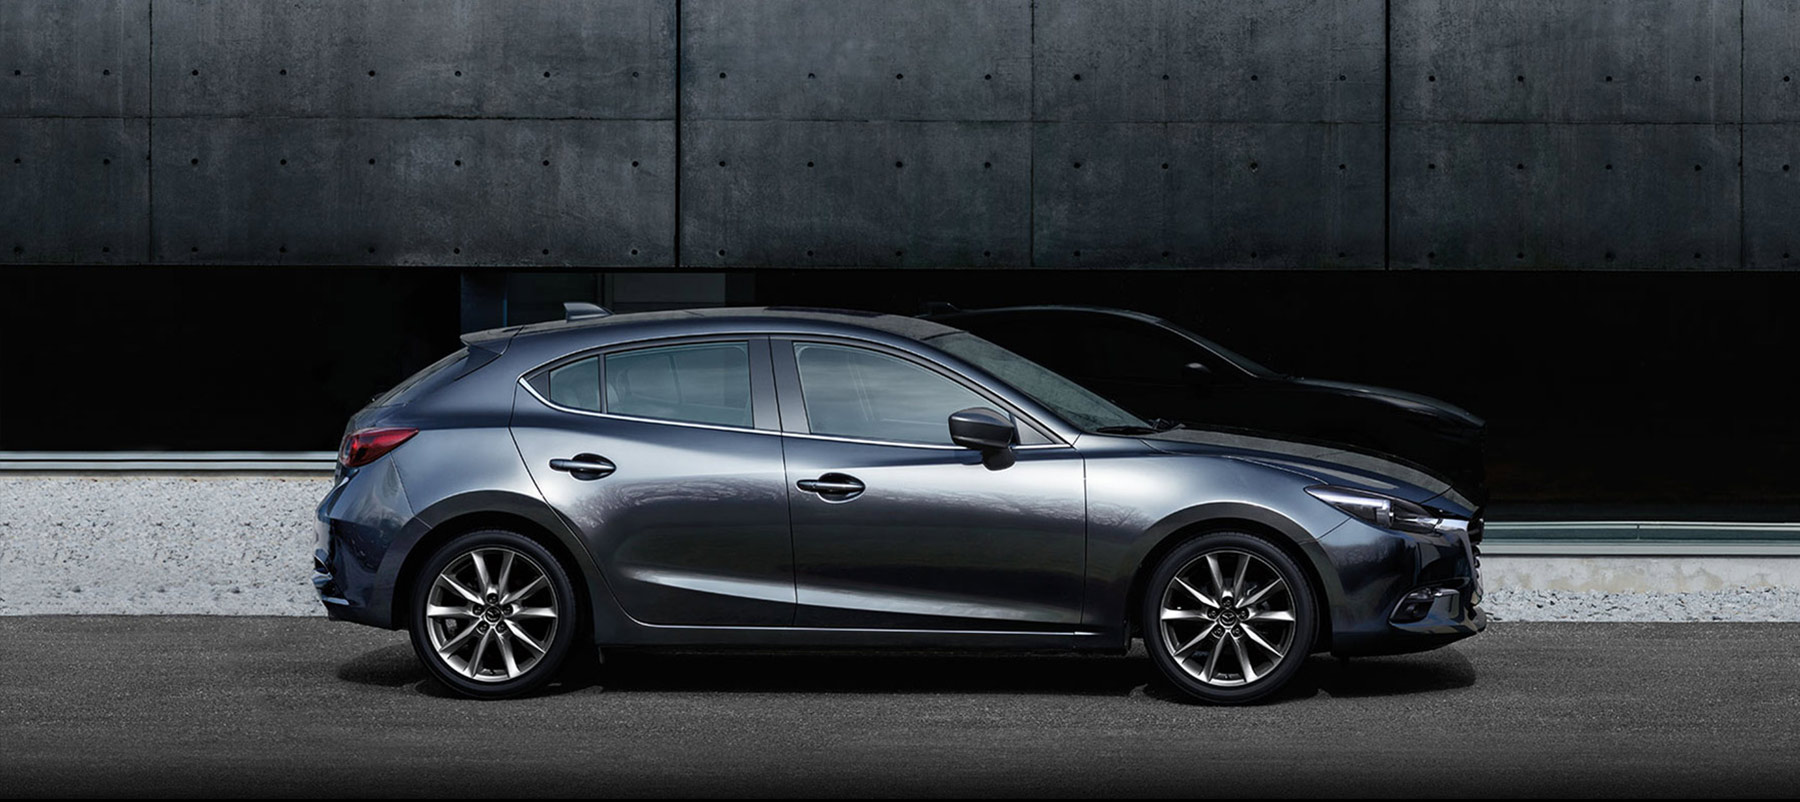 2018 Mazda3 Hatchback, HOW IT DRIVES STARTS WITH HOW IT'S MADE.